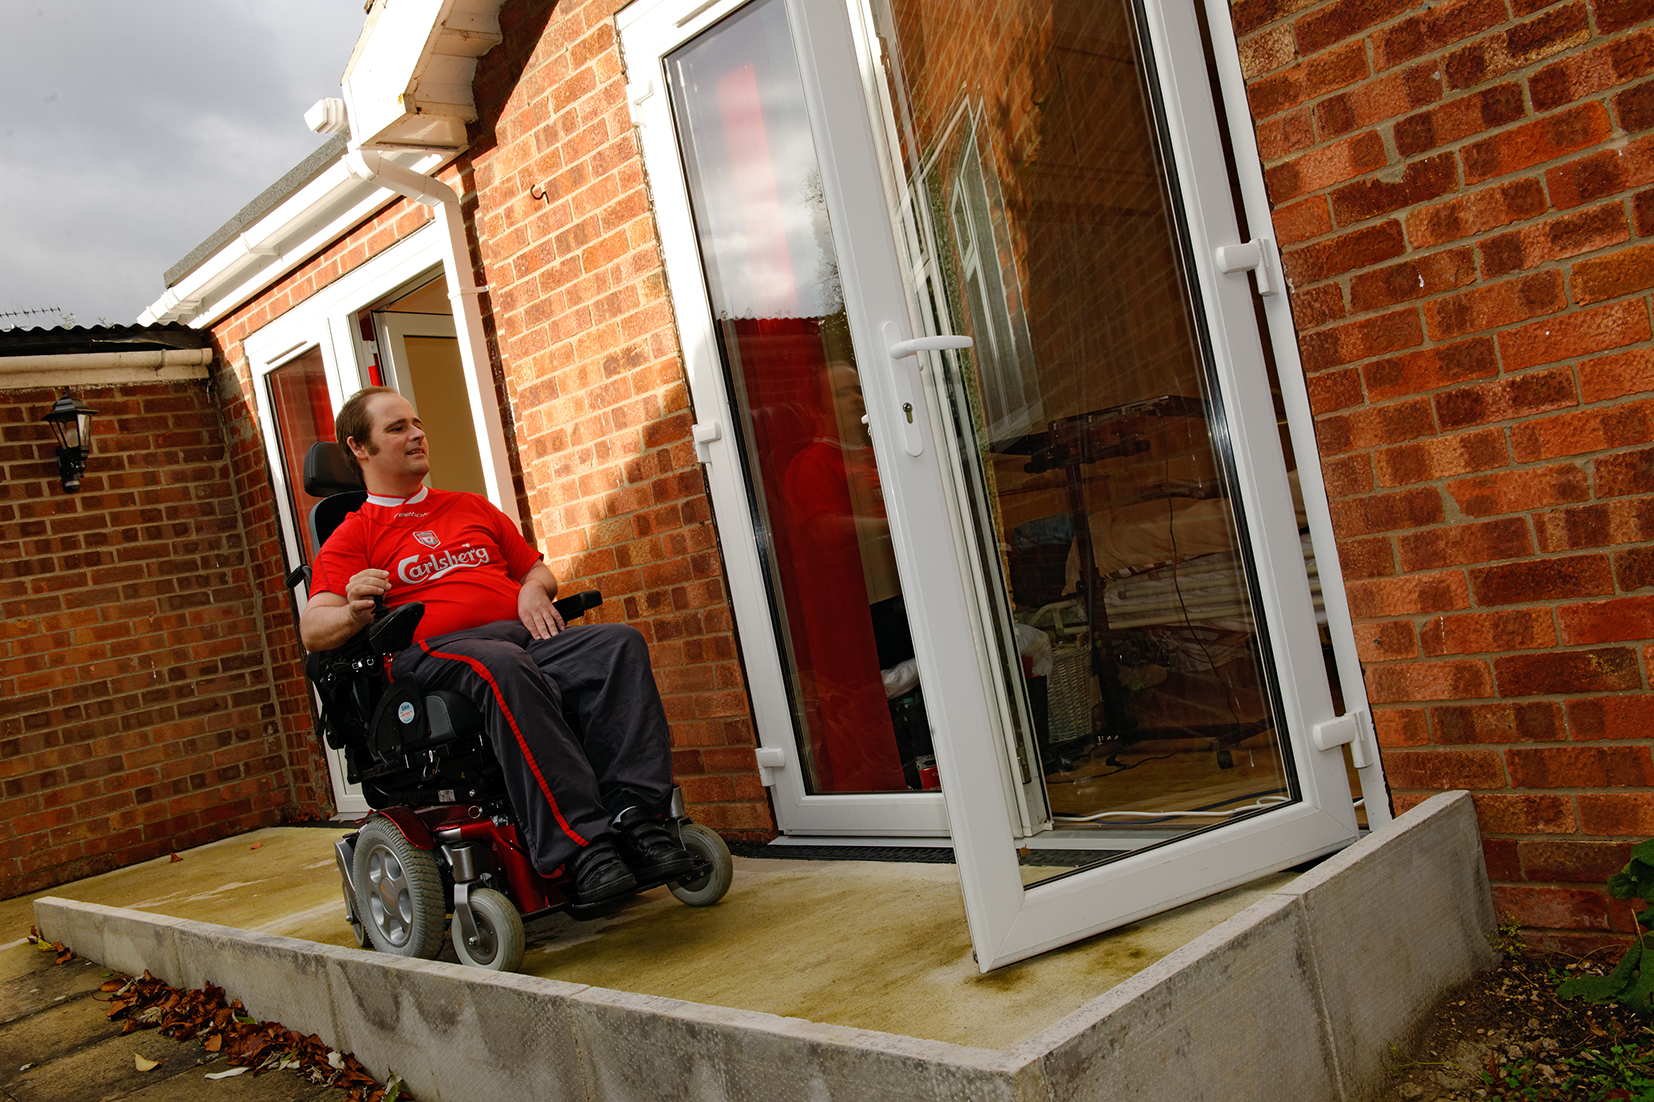 The charity sources aiding equipment for the home in order to help people across the county.